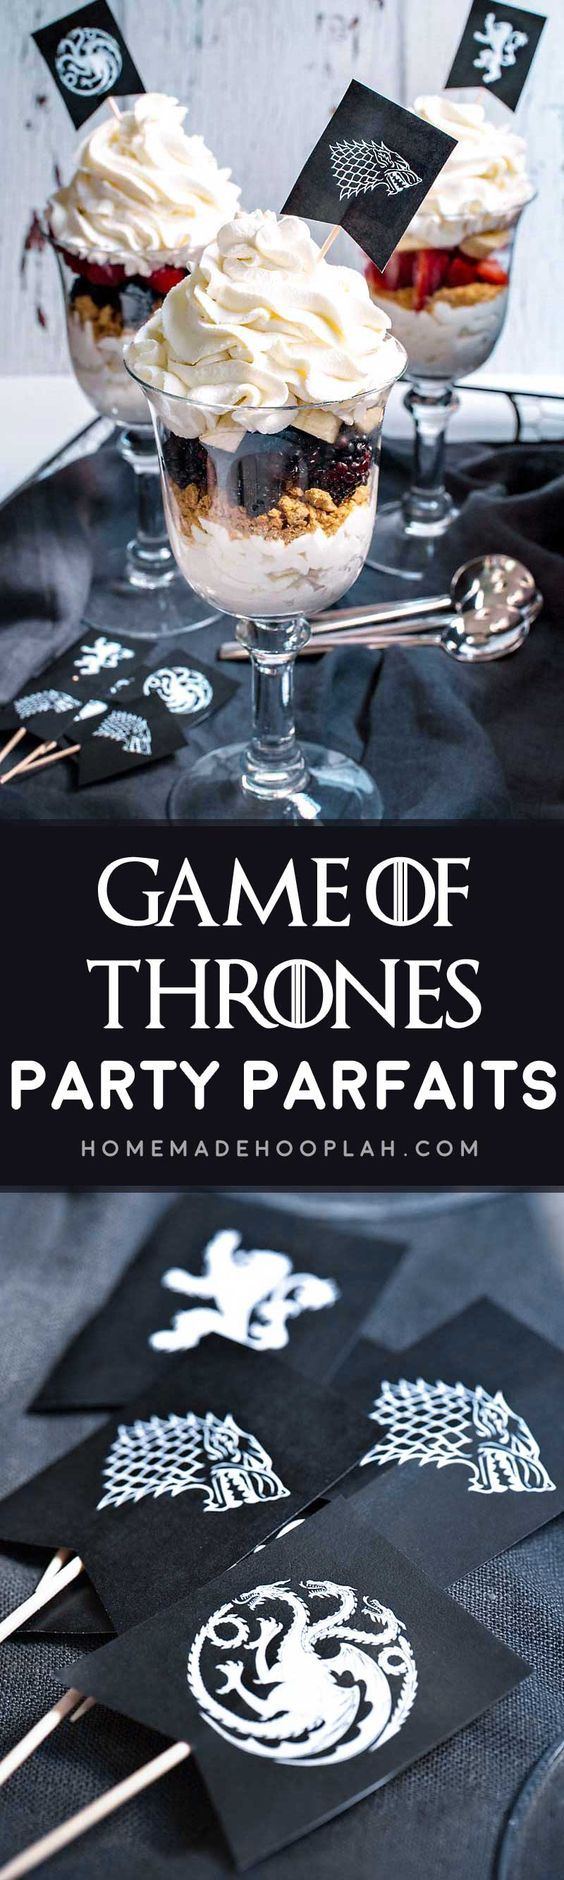 Game of thrones party parfaits have your game of thrones for Game of thrones birthday party